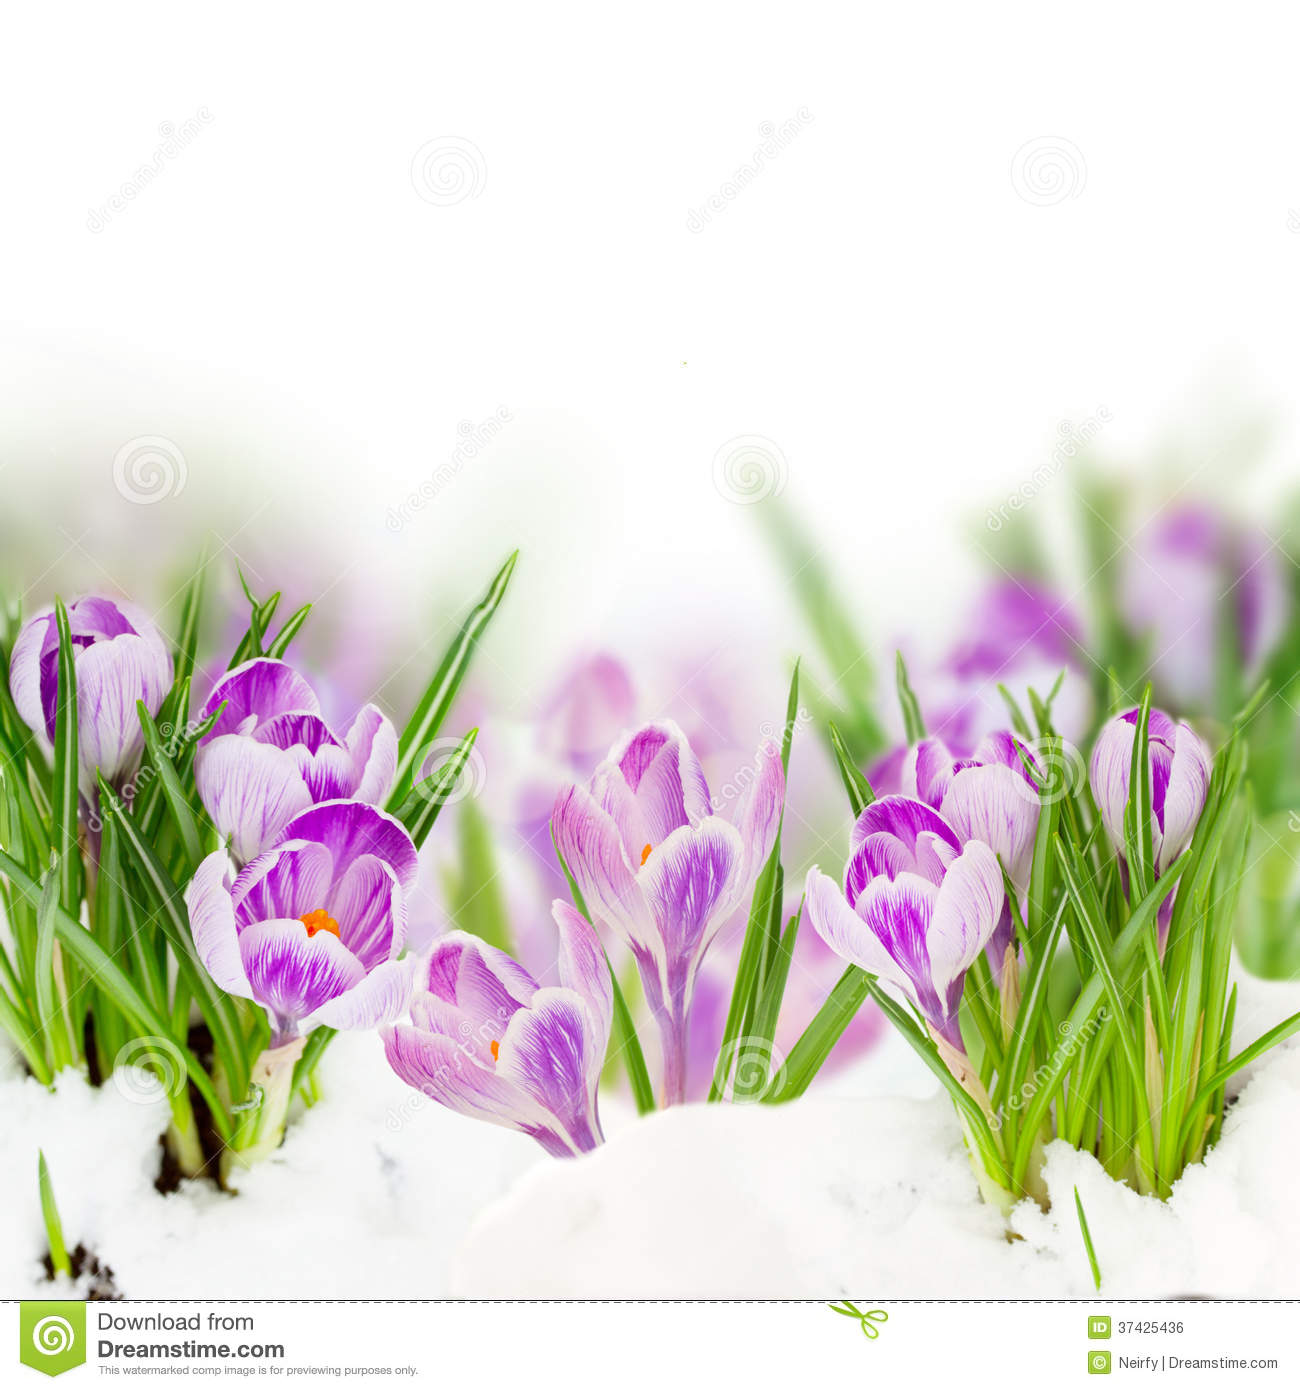 Spring Crocuses Royalty Free Stock Image - Image: 37425436